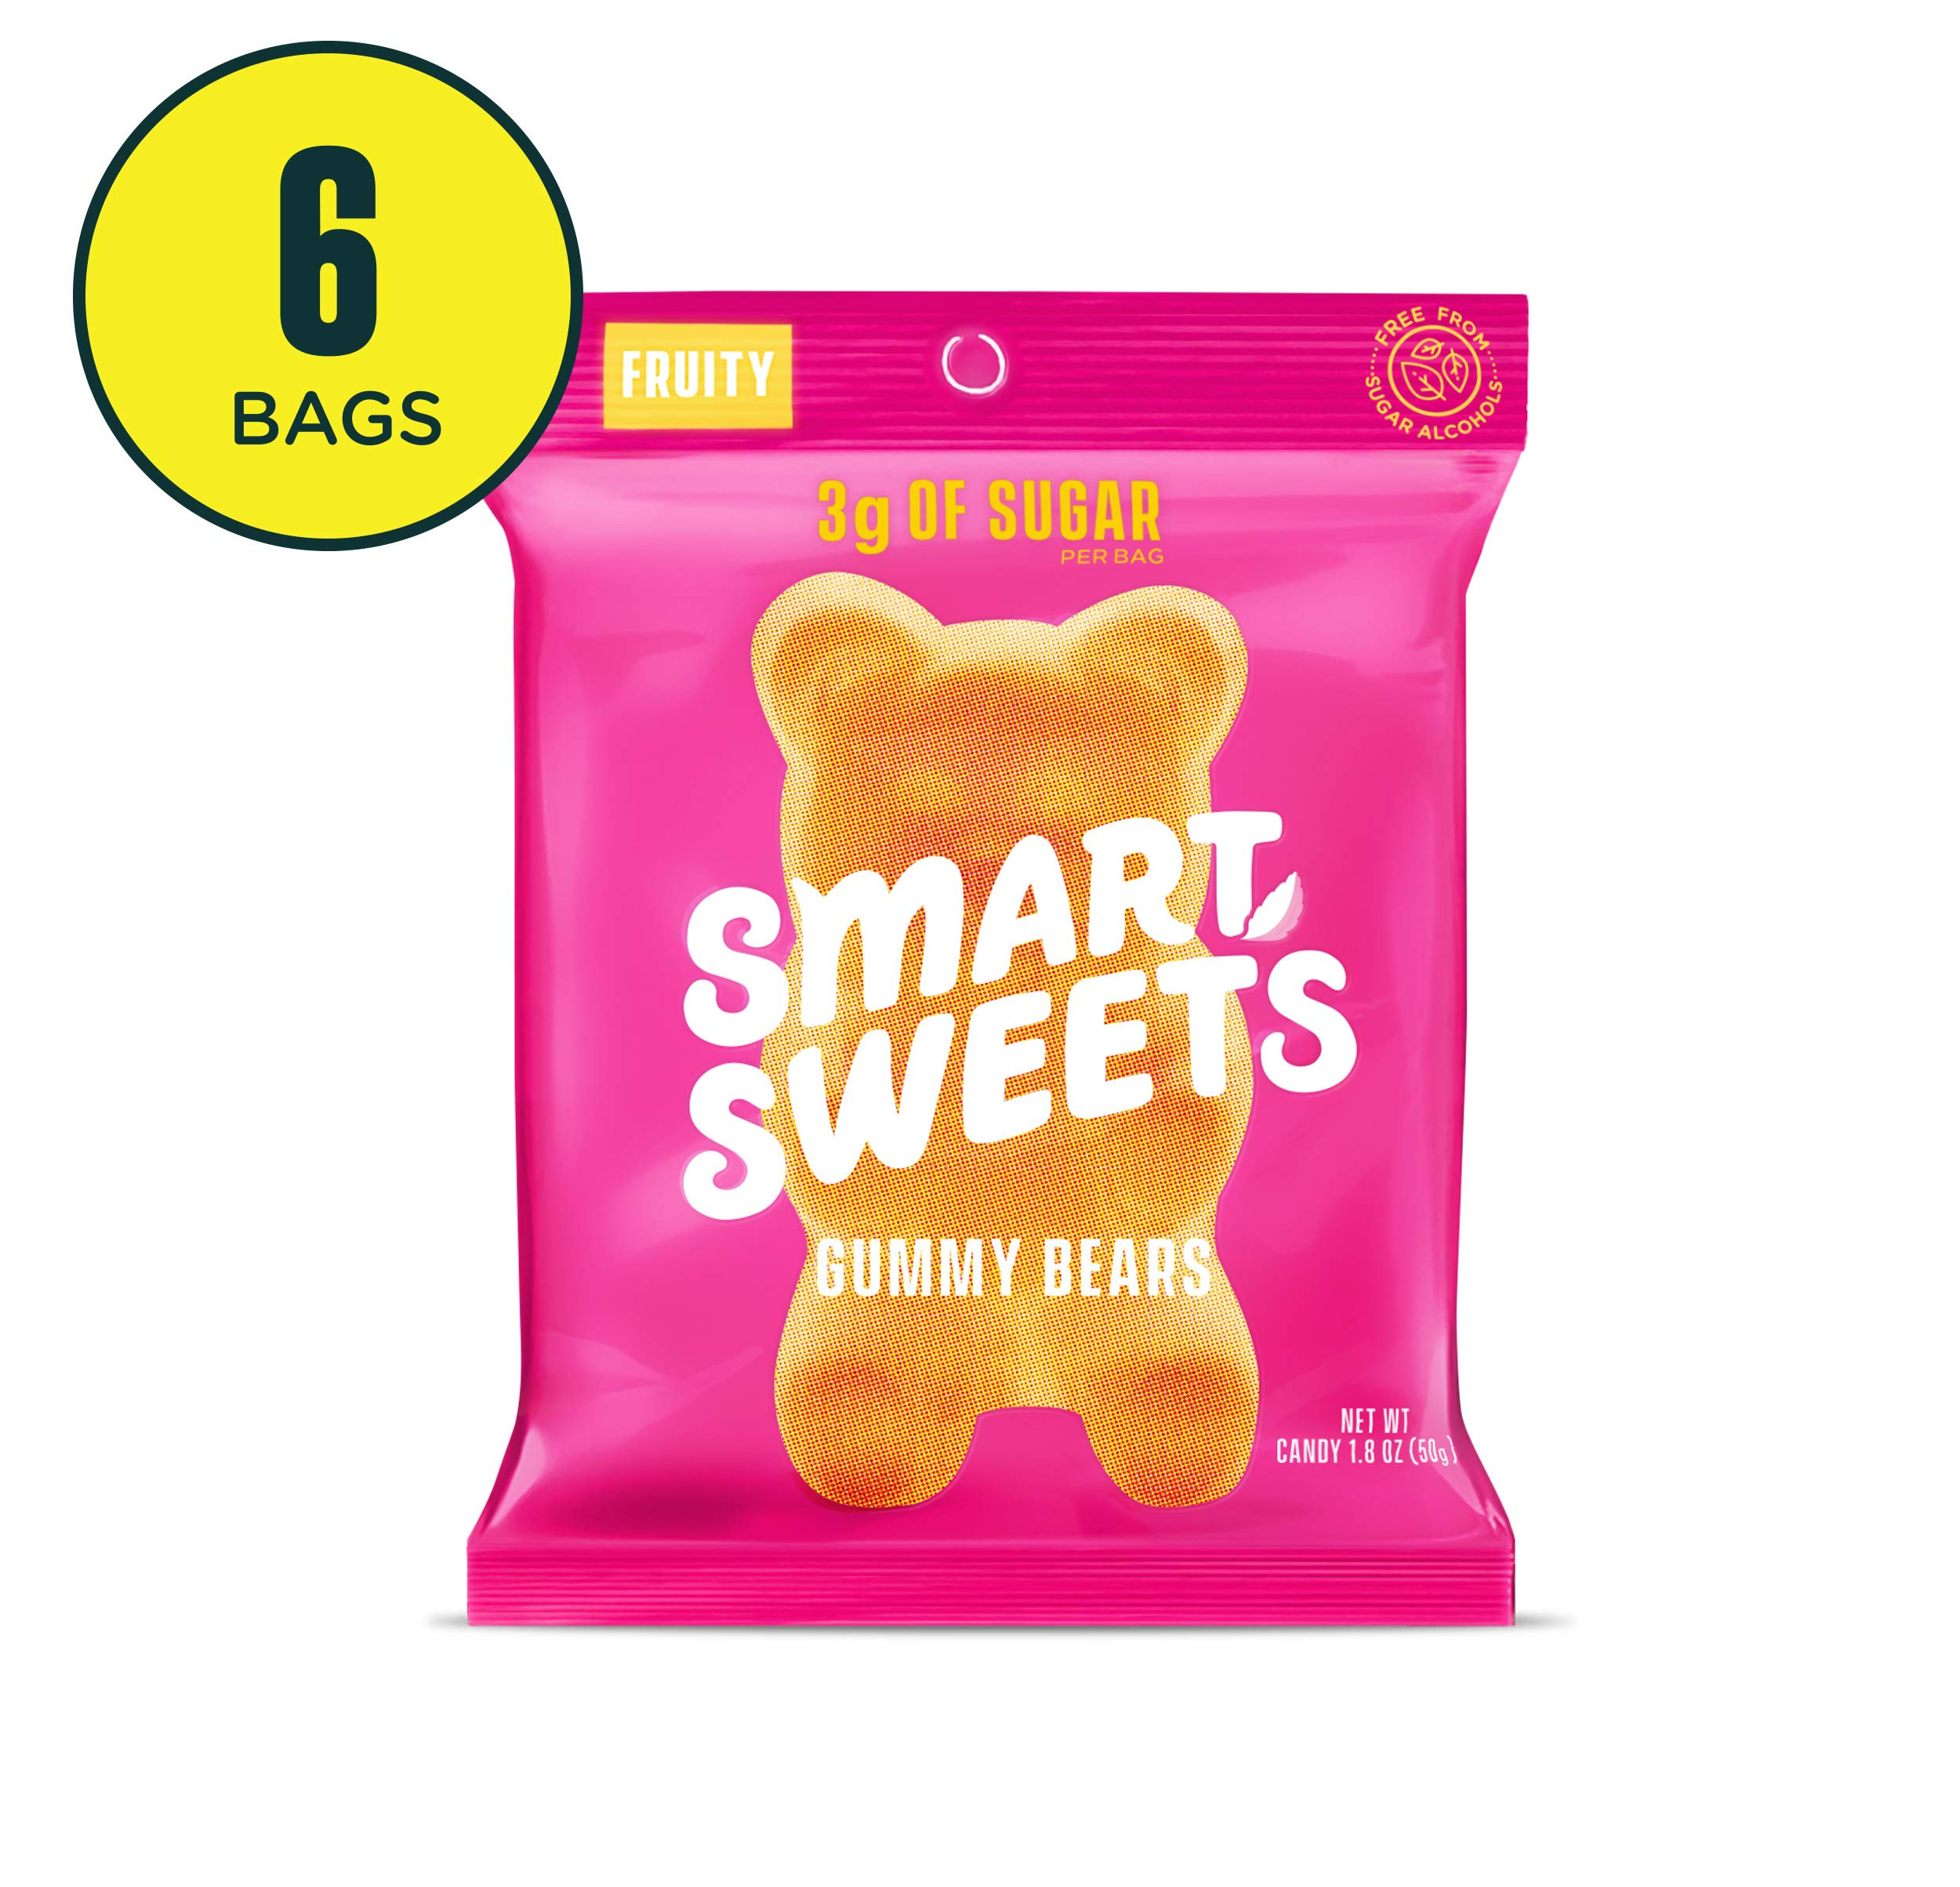 SmartSweets Low Sugar Gummy Bears Candy Fruity 1.8 Oz Bags (Box Of 6), Free of Sugar Alcohols & No Artificial Sweeteners Sweetened With Stevia, Natural Fruit Flavors by SmartSweets